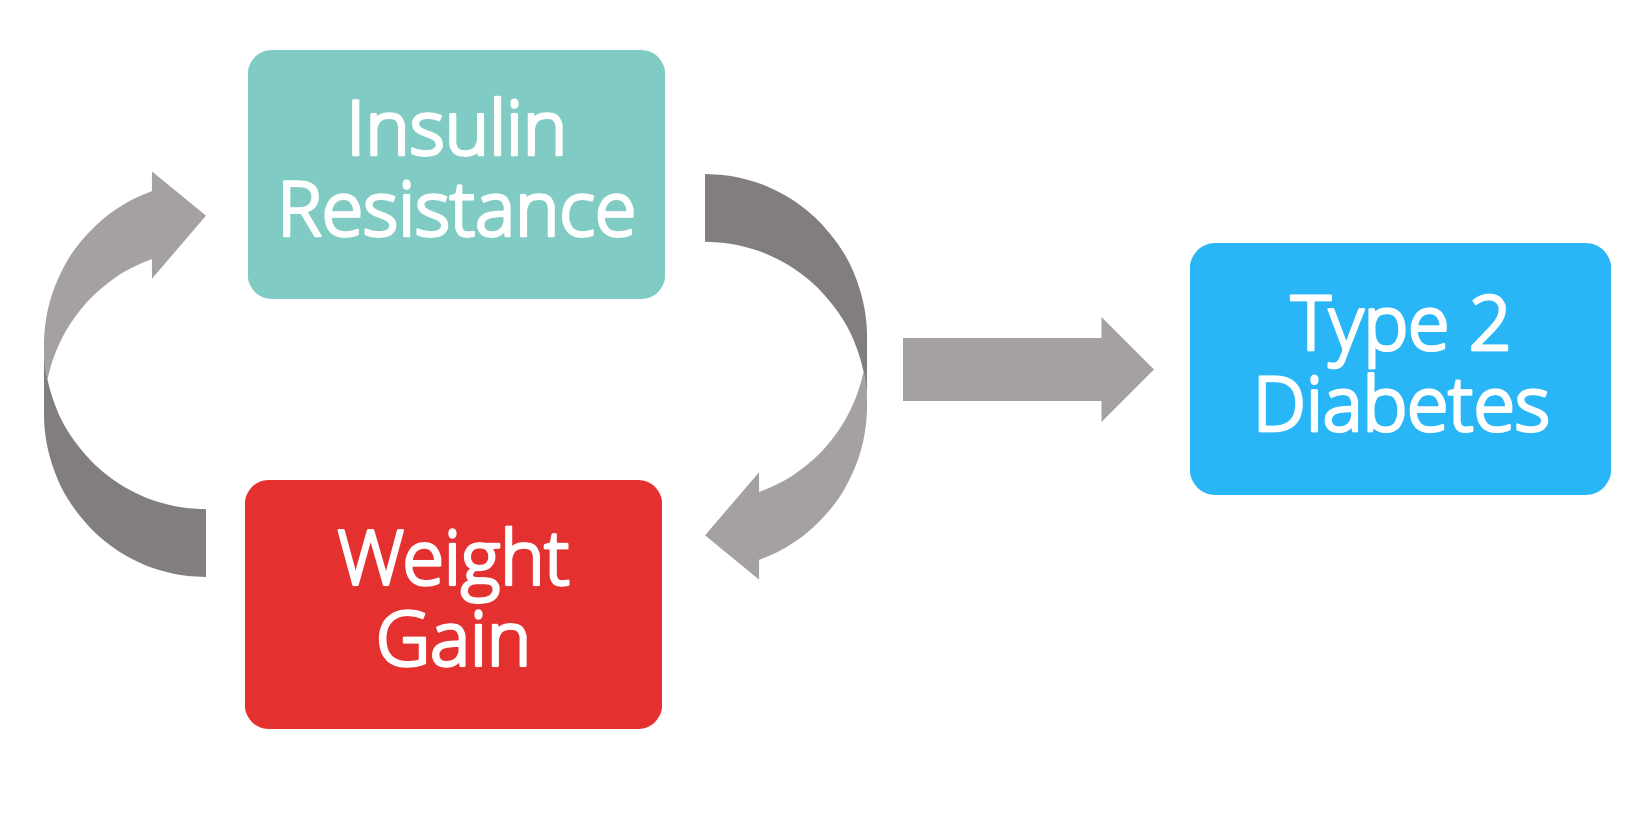 Insulin resistance and weight gain in a self-perpetuating cycle until type 2 diabetes develops.